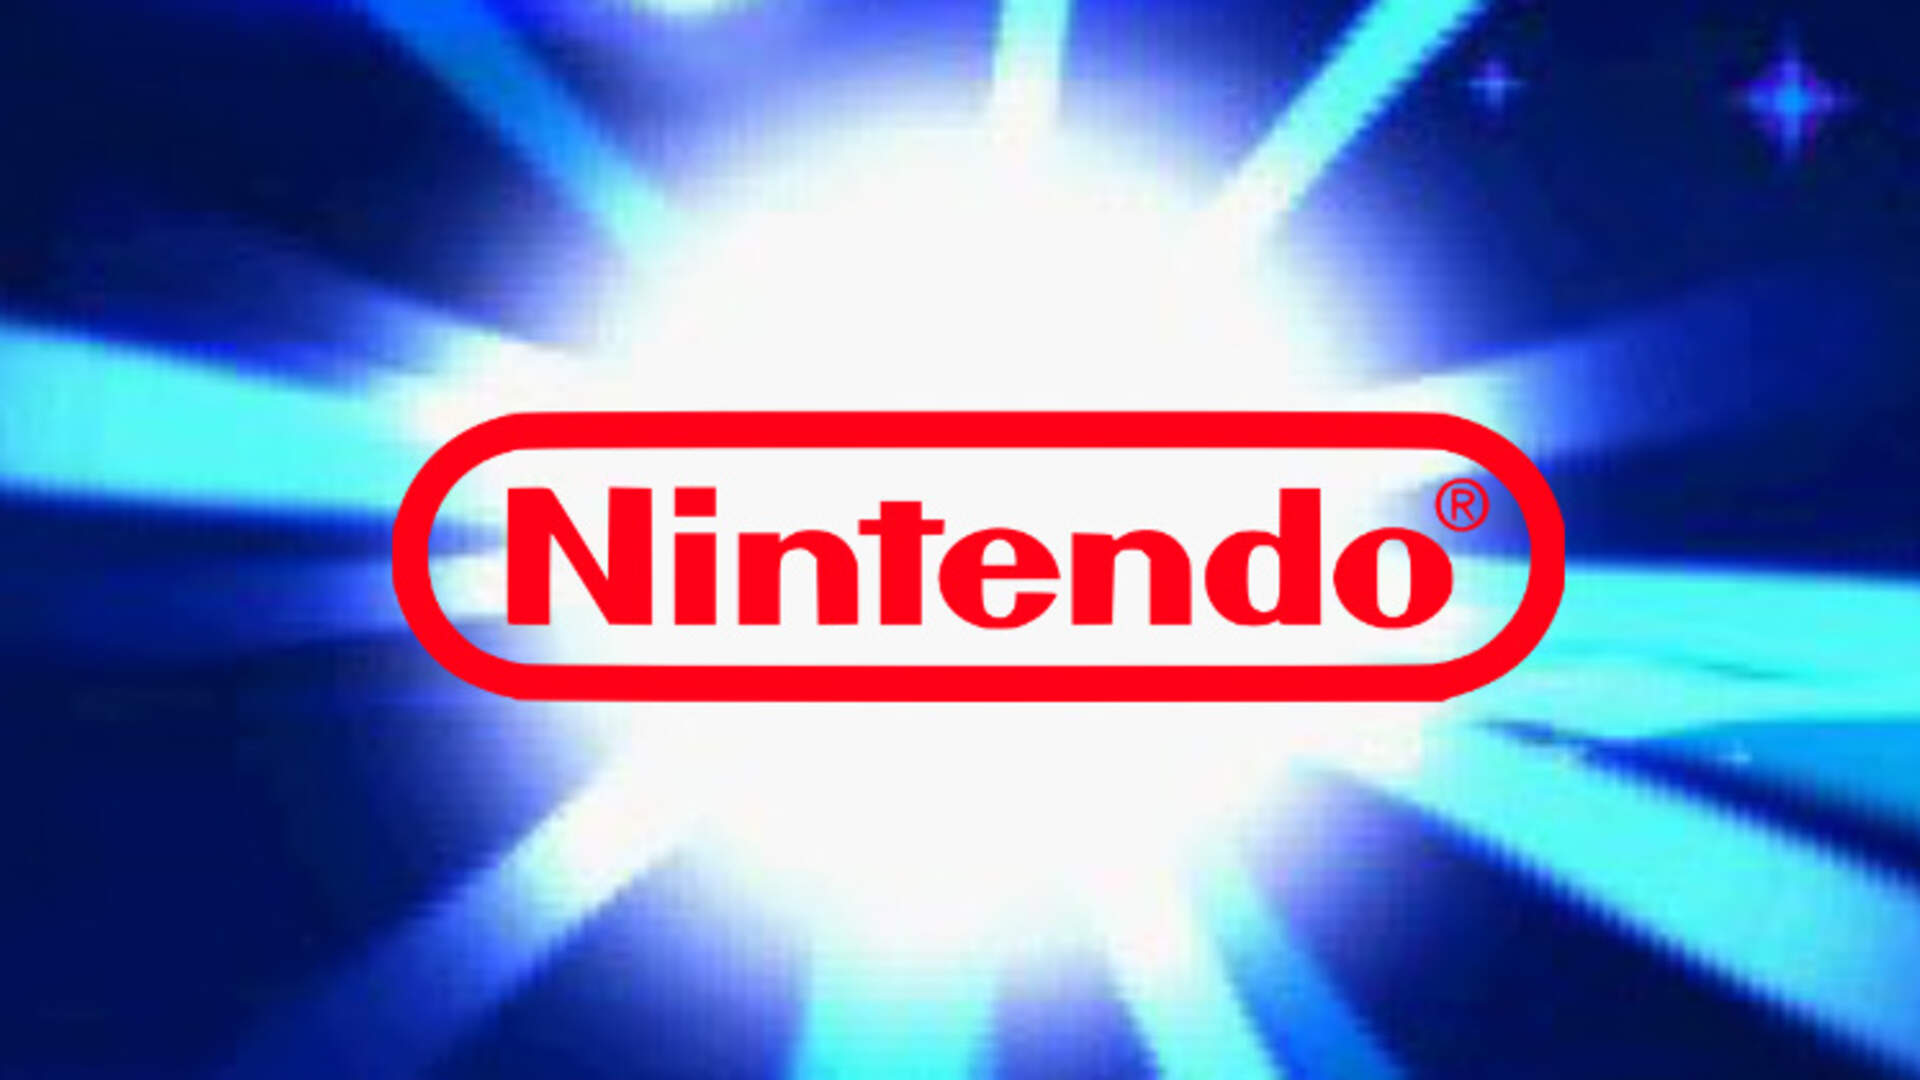 What? Nintendo is Evolving! The Company Finds Profit Again